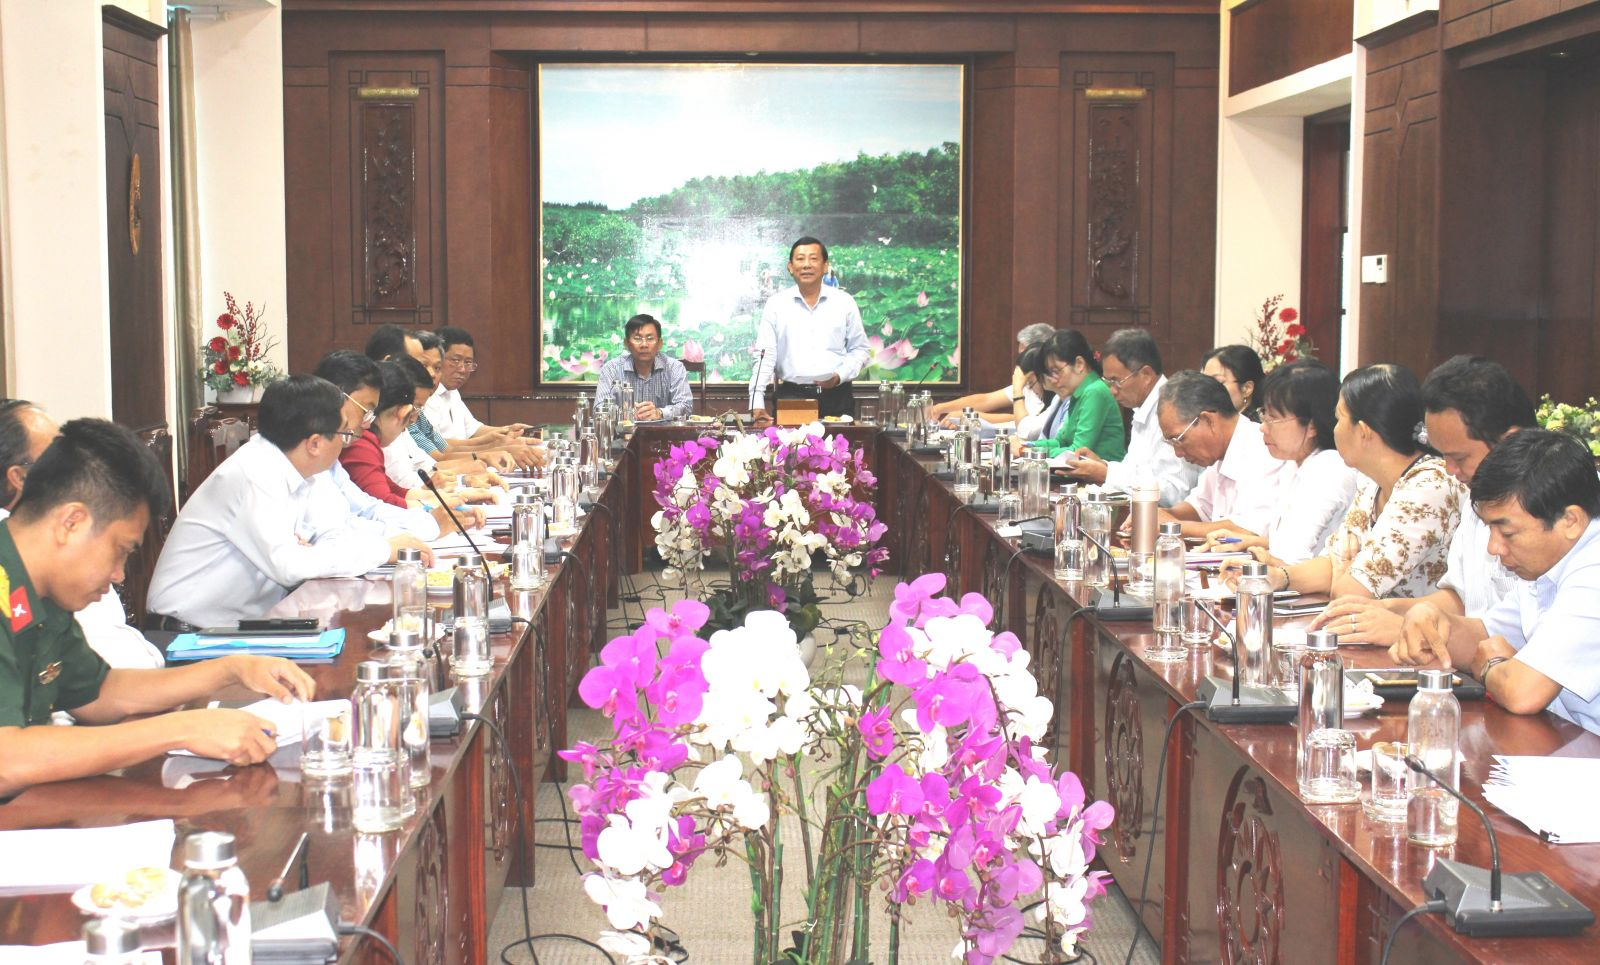 Director of Department of Information and Communications of the province - Nguyen Ba Luan chaired the conference